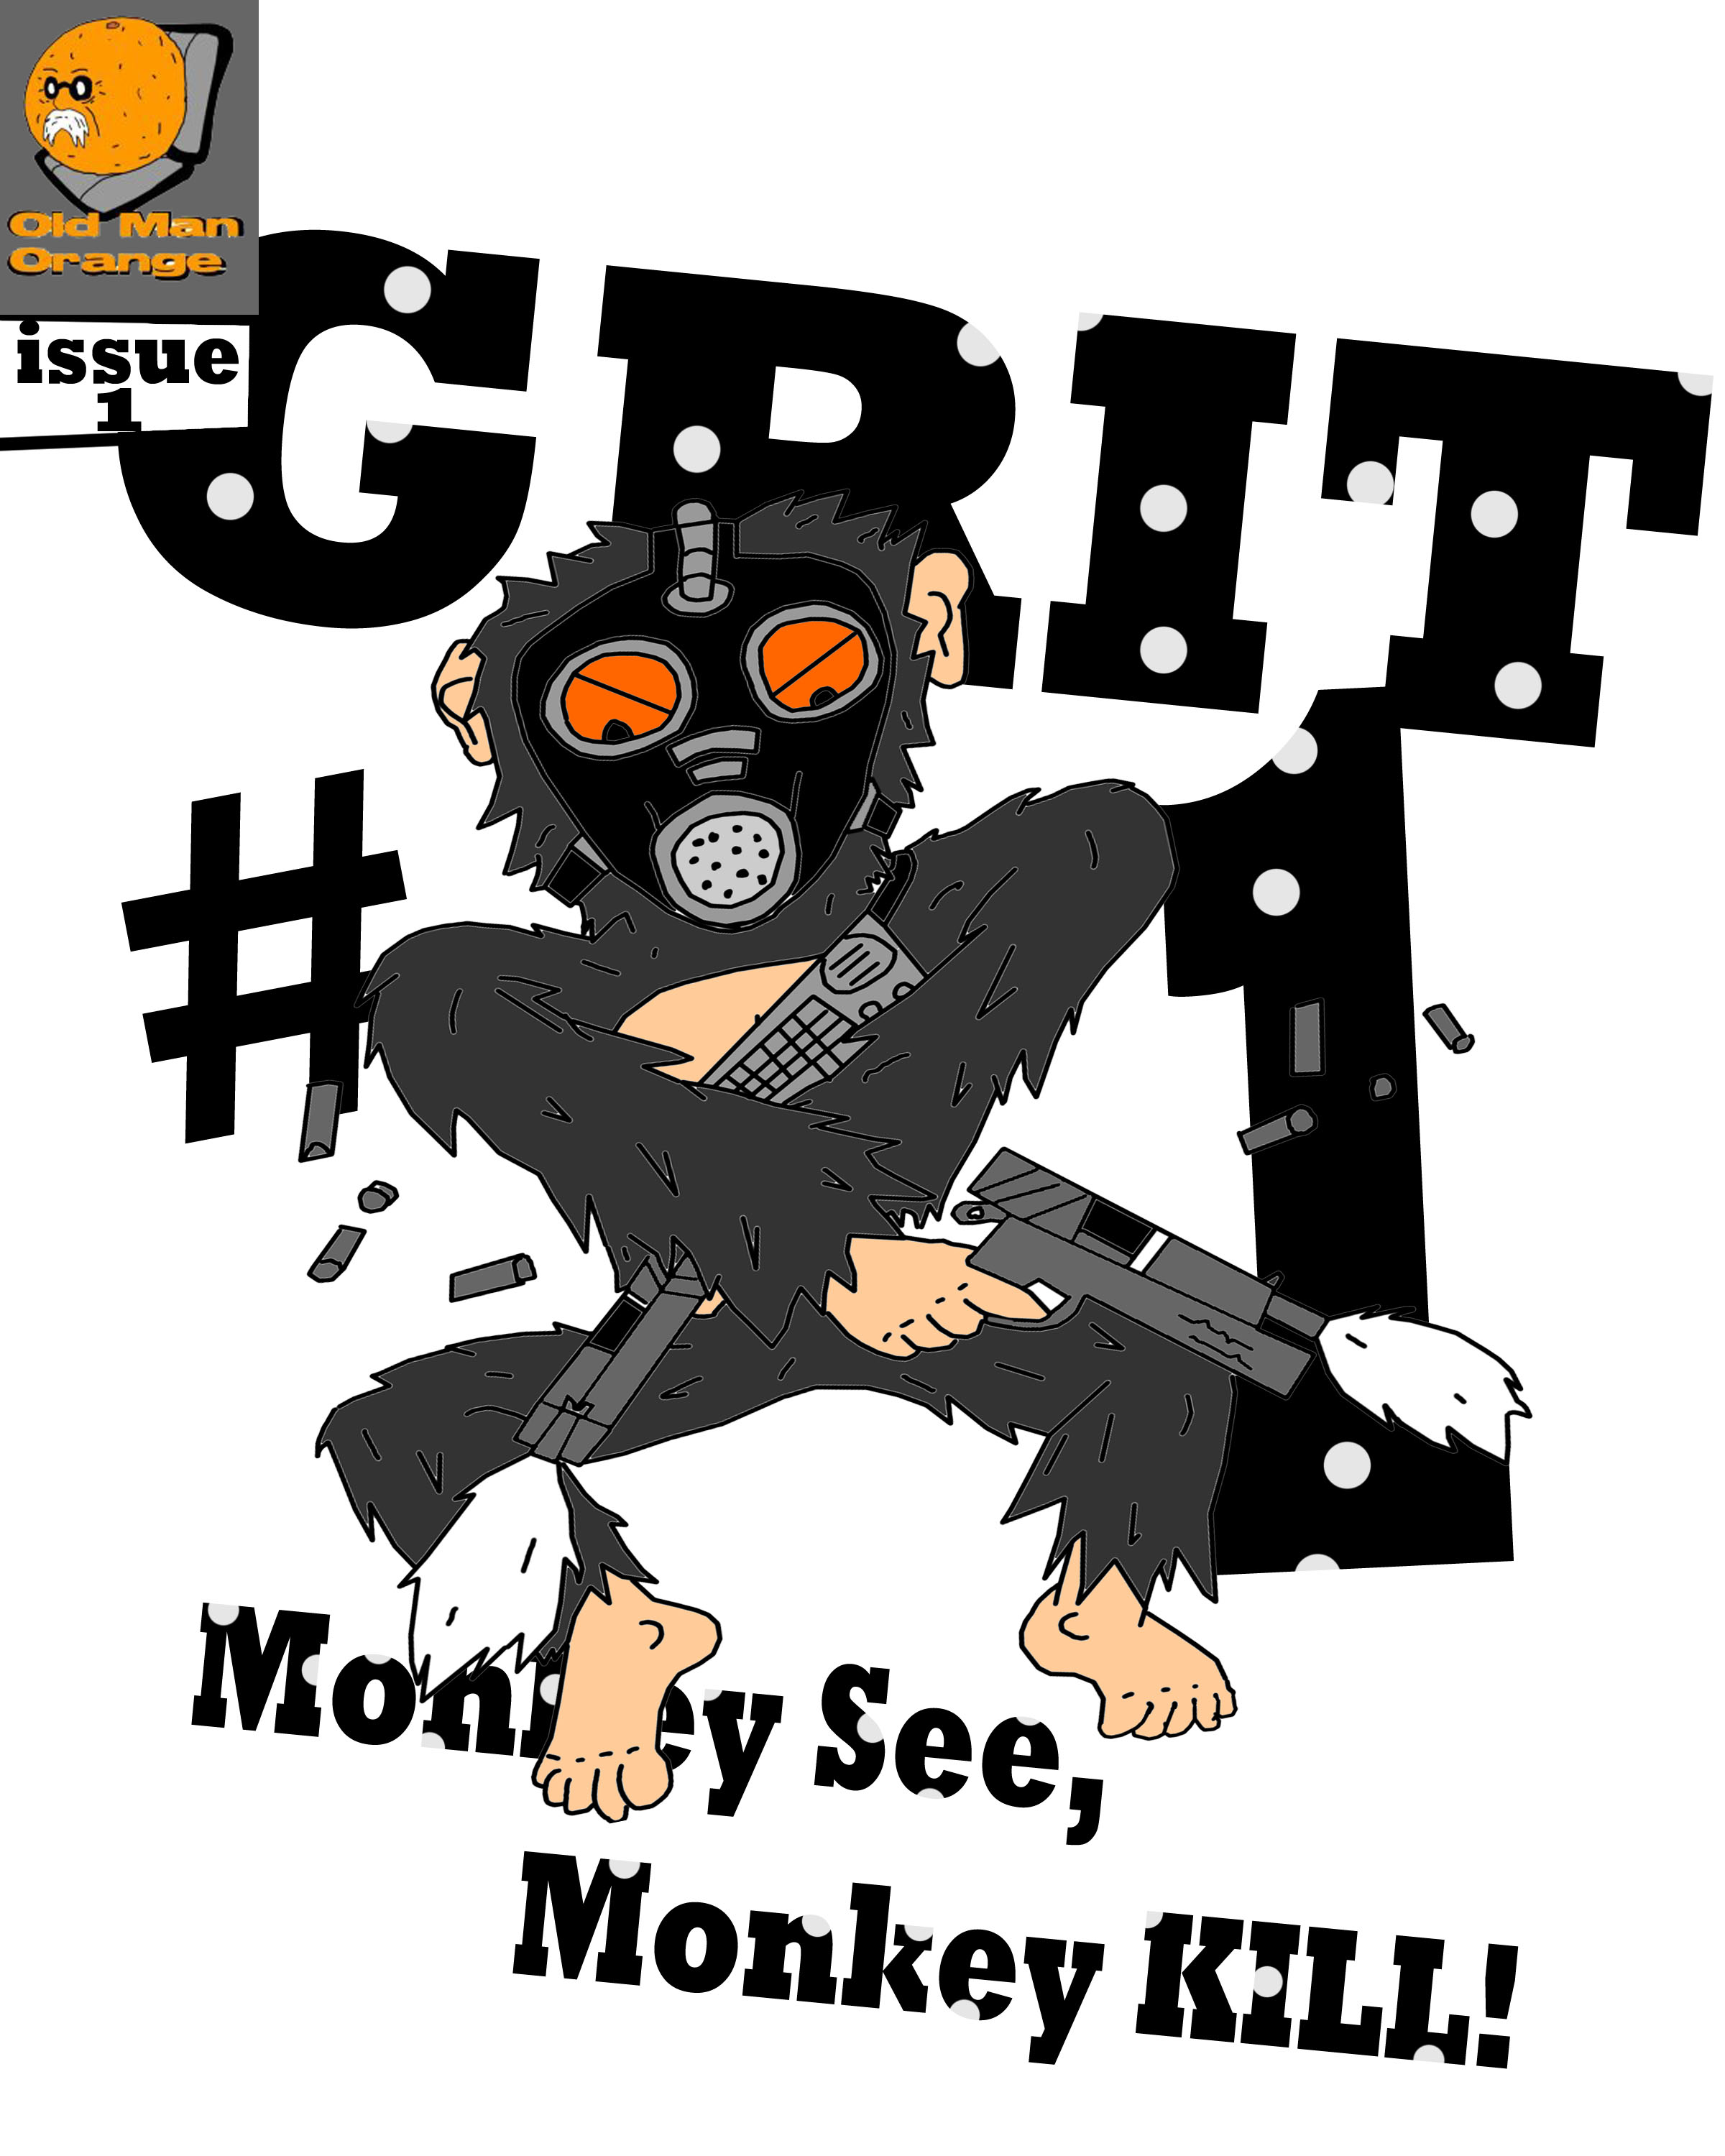 Grit Issue#1: Monkey See, Monkey KILL!